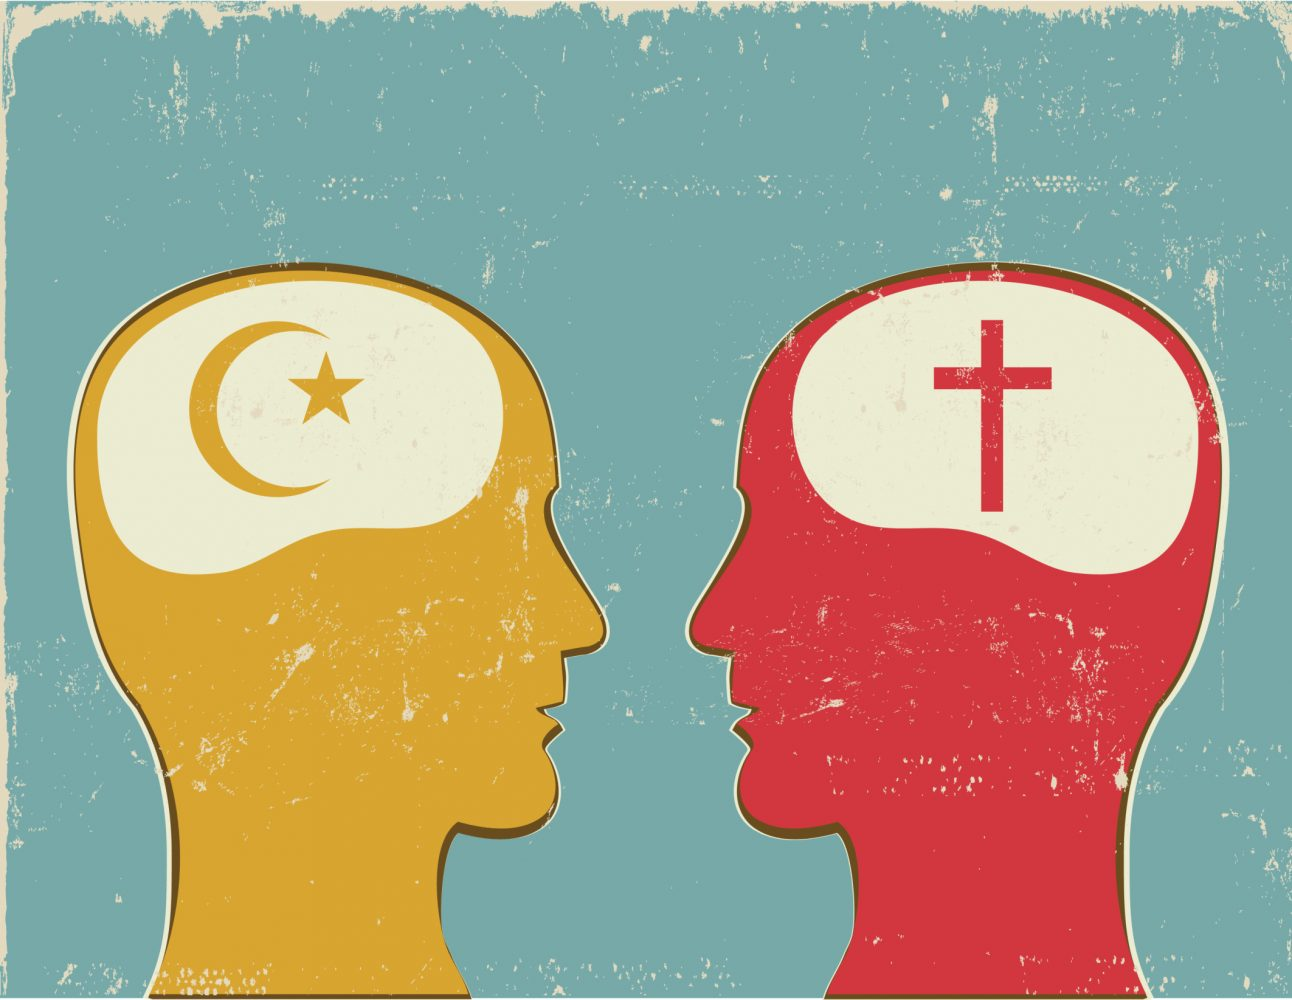 Profiles+with+Christian+and+Islamic+symbols